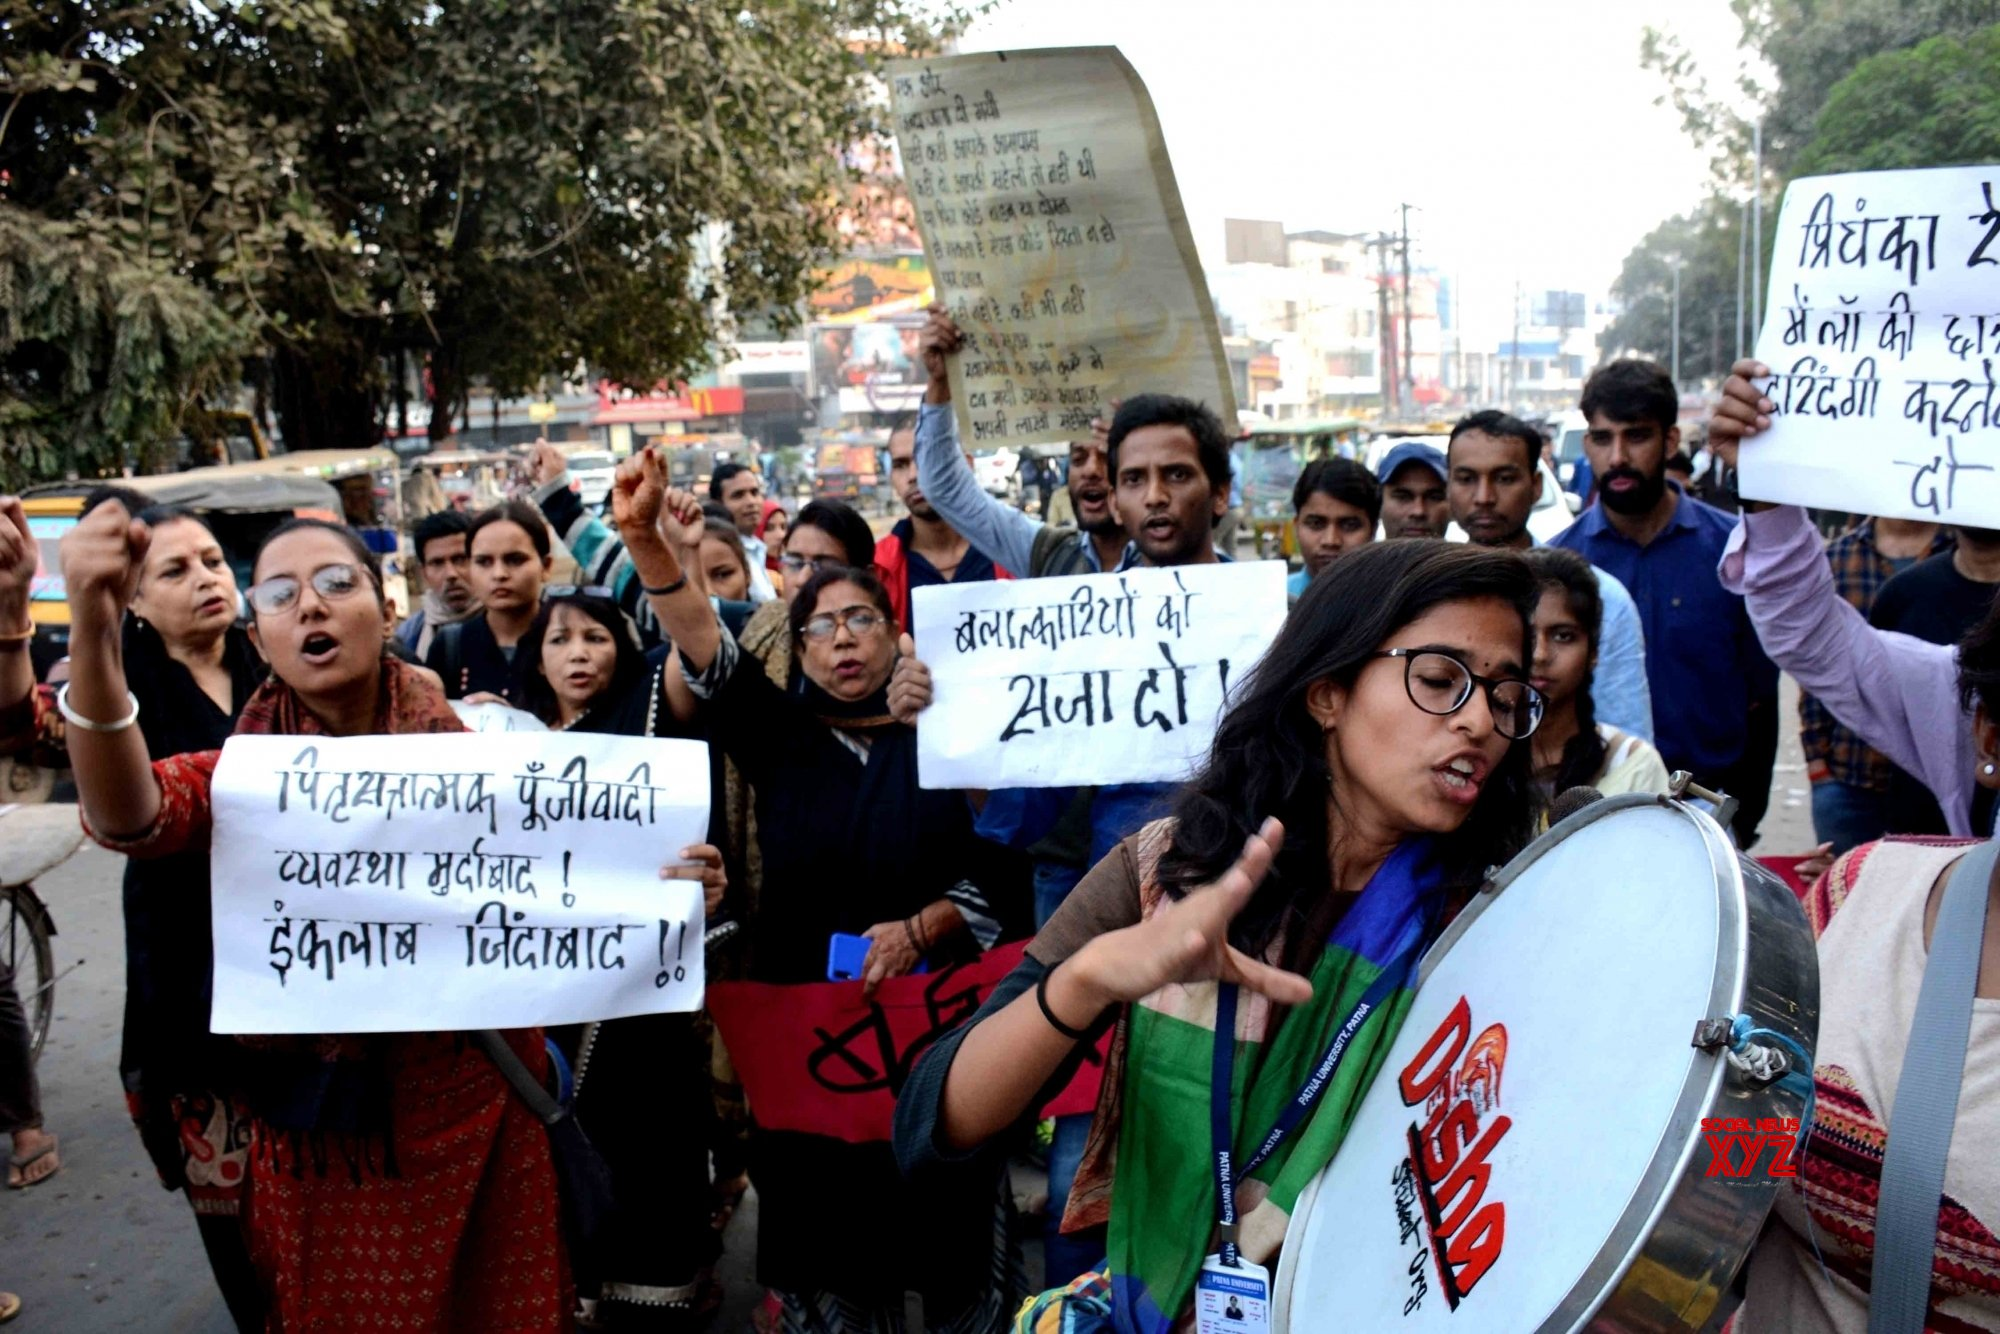 Patna: Disha's protest against Hyderabad gang rape - murder #Gallery